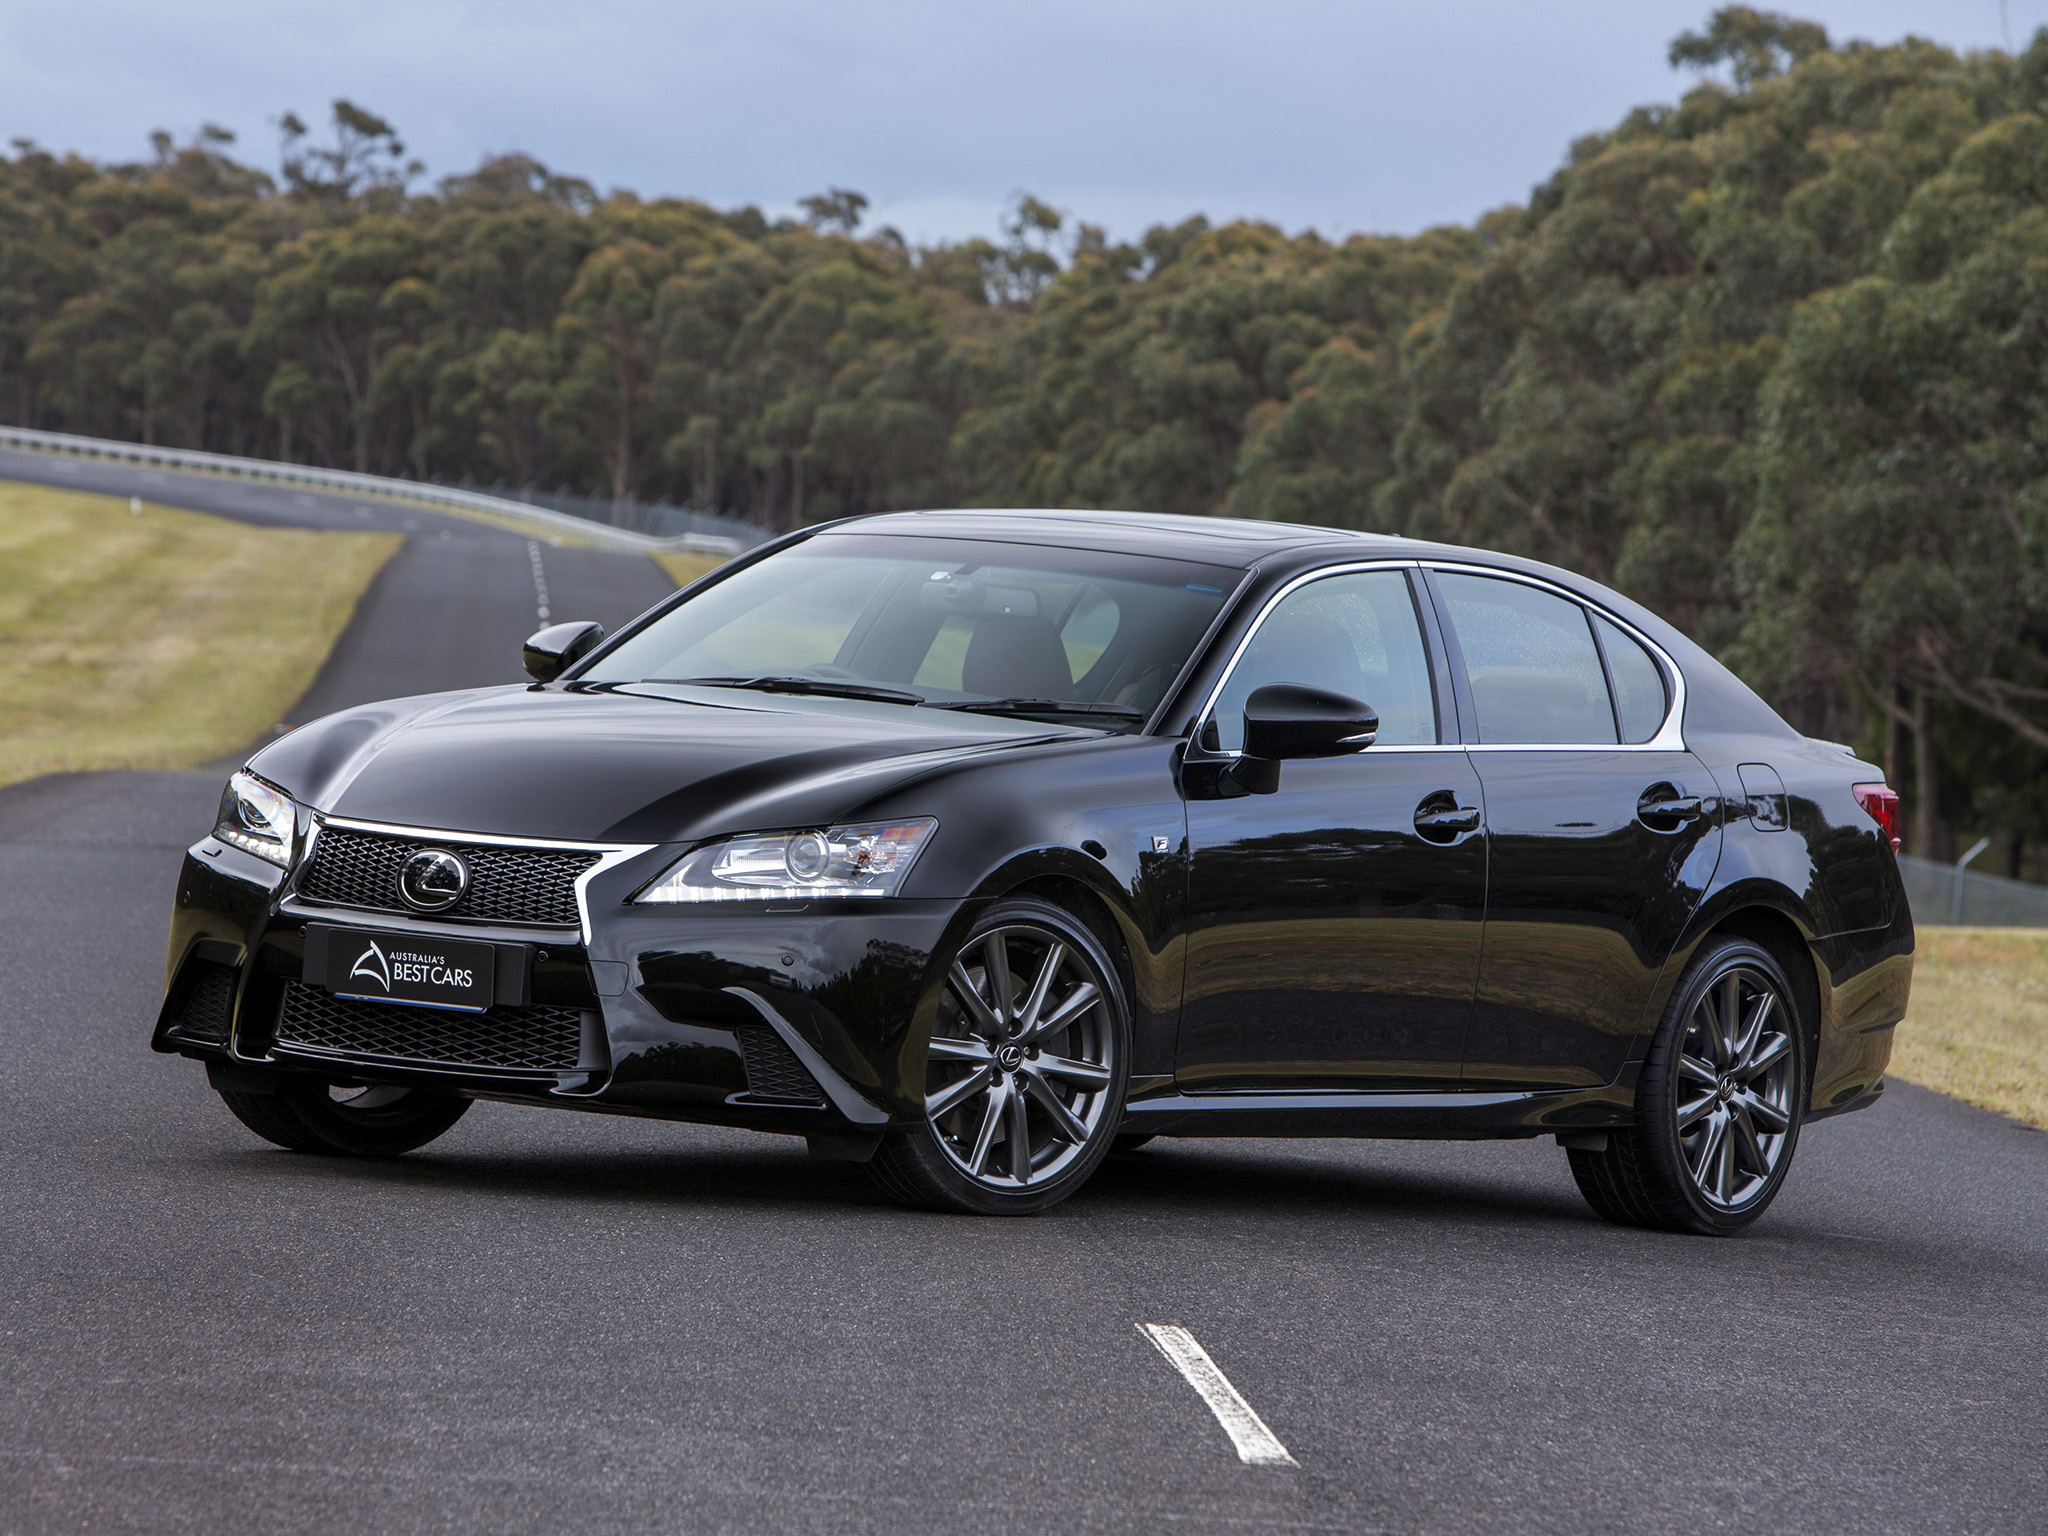 2009 lexus gs 350 - information and photos - zombiedrive